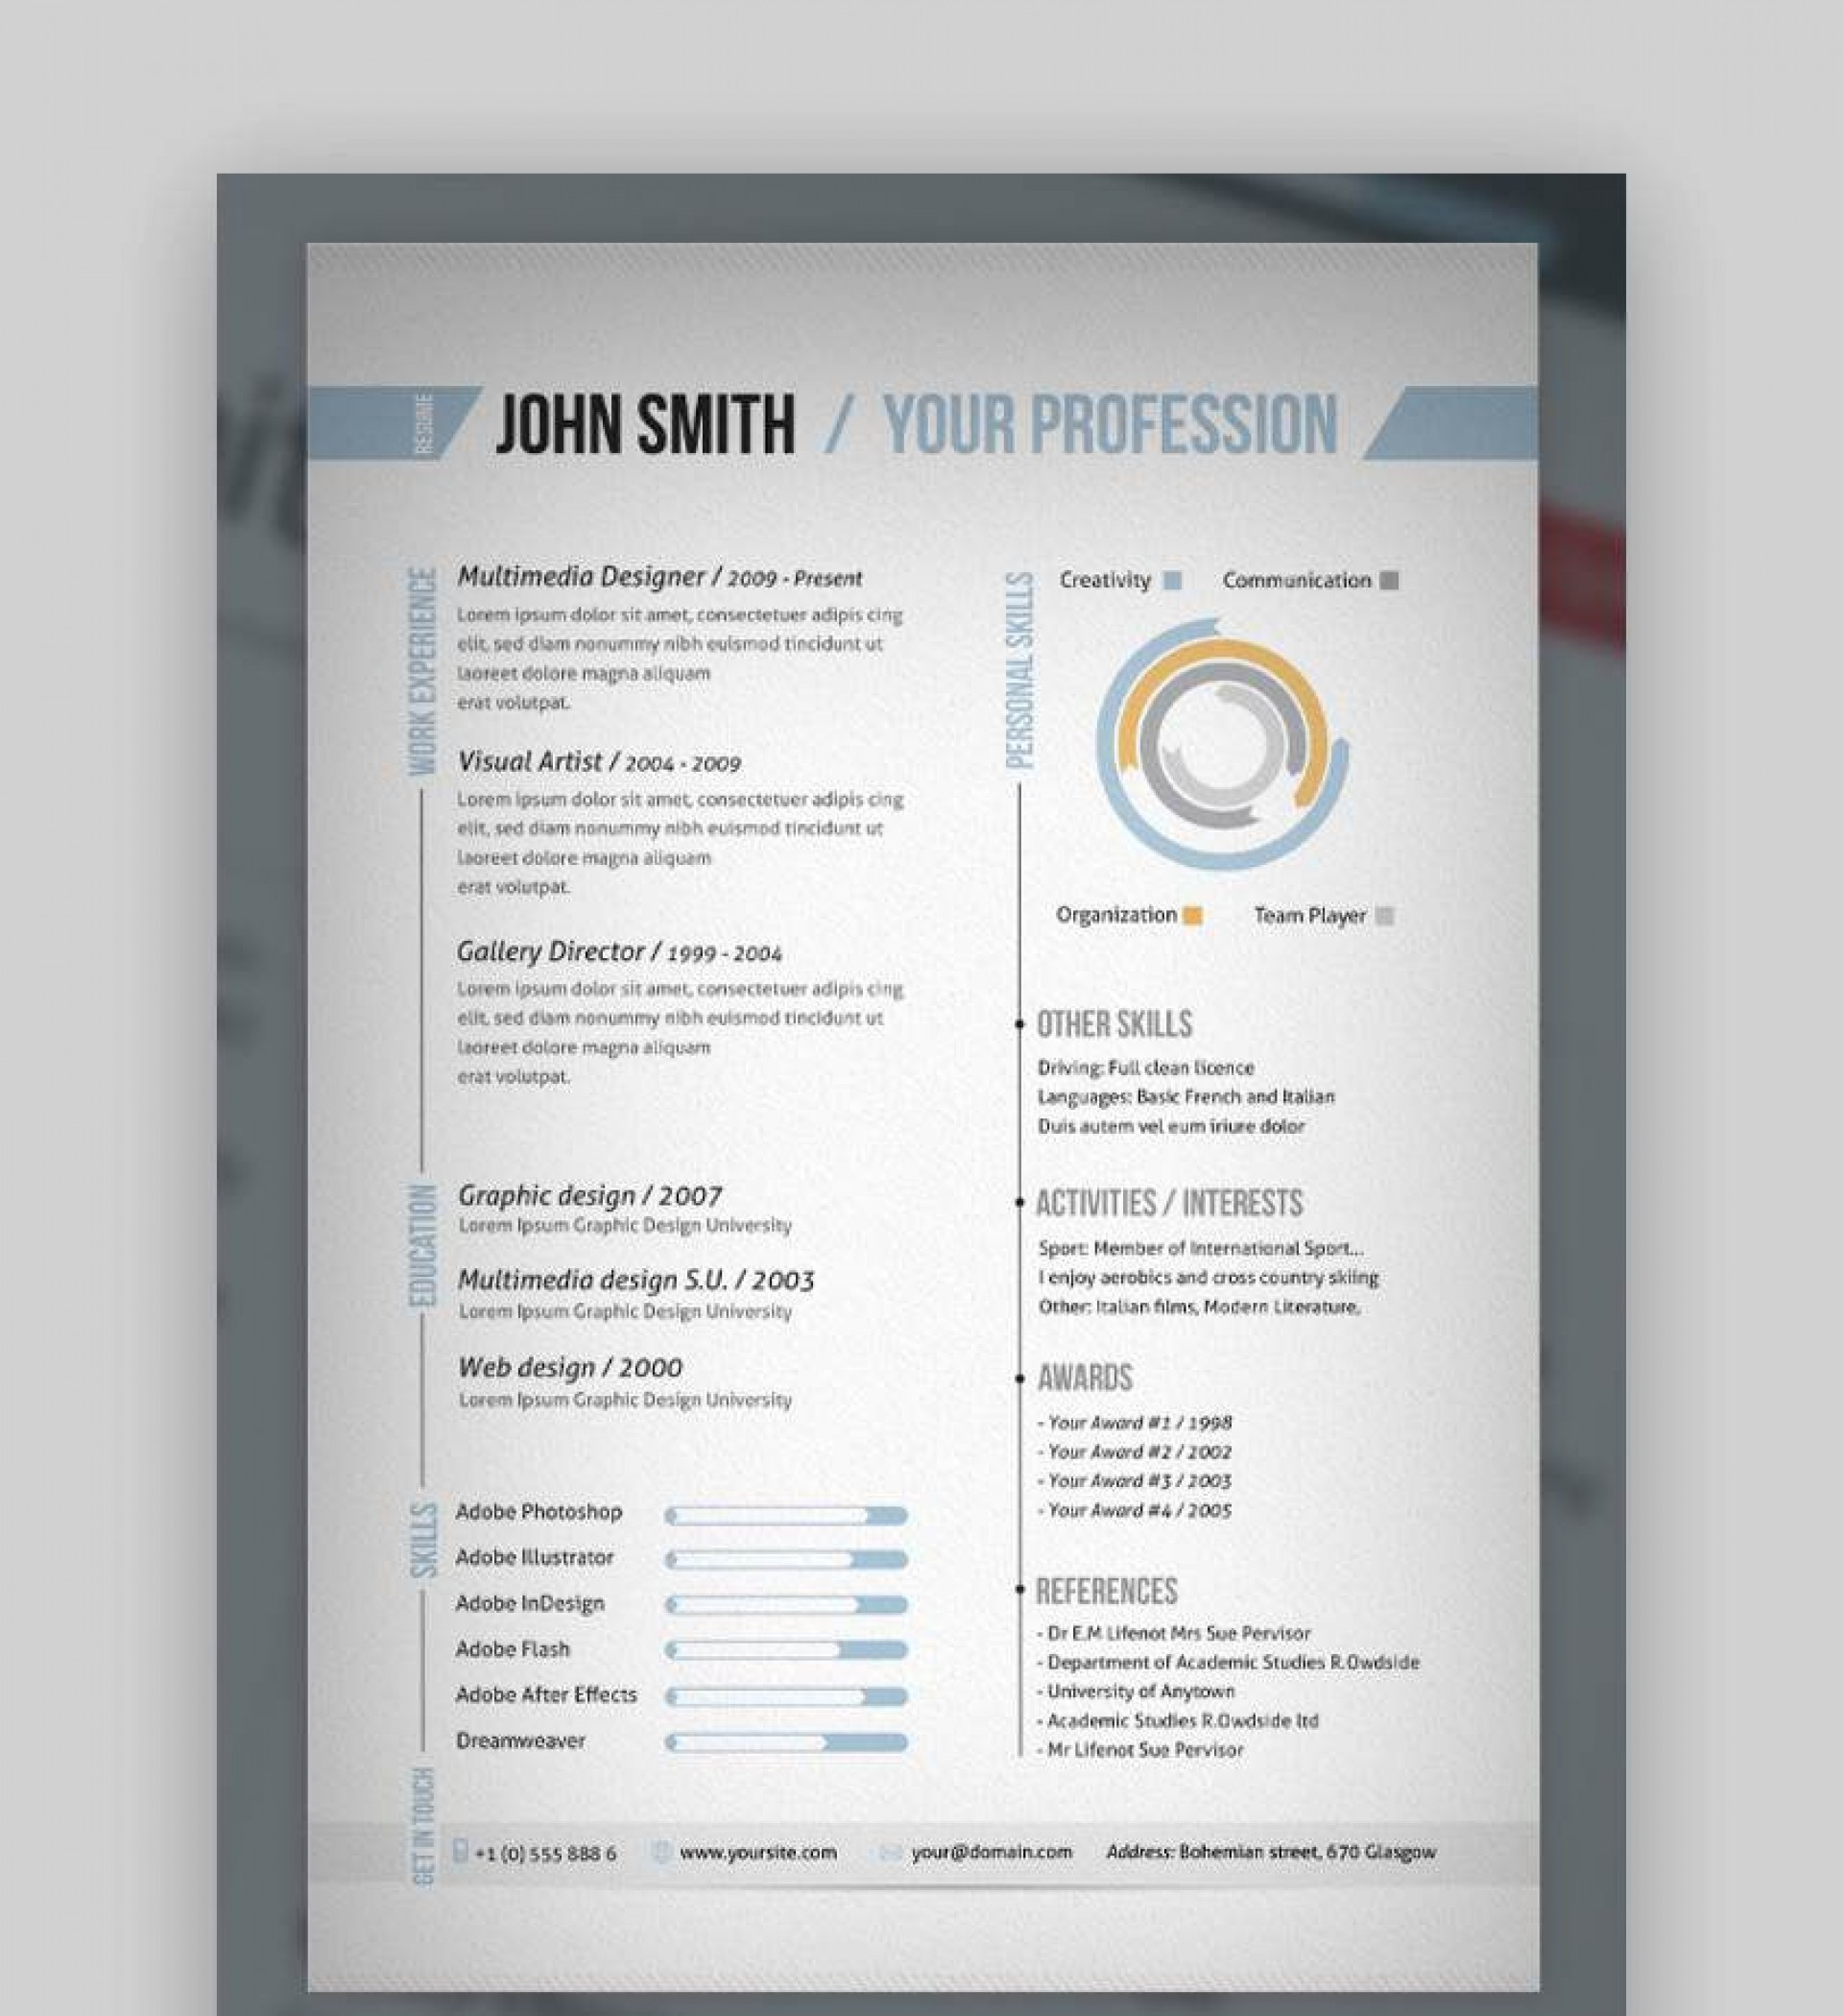 007 Excellent 1 Page Resume Template High Def  Templates One Basic Word Free Html Download1920